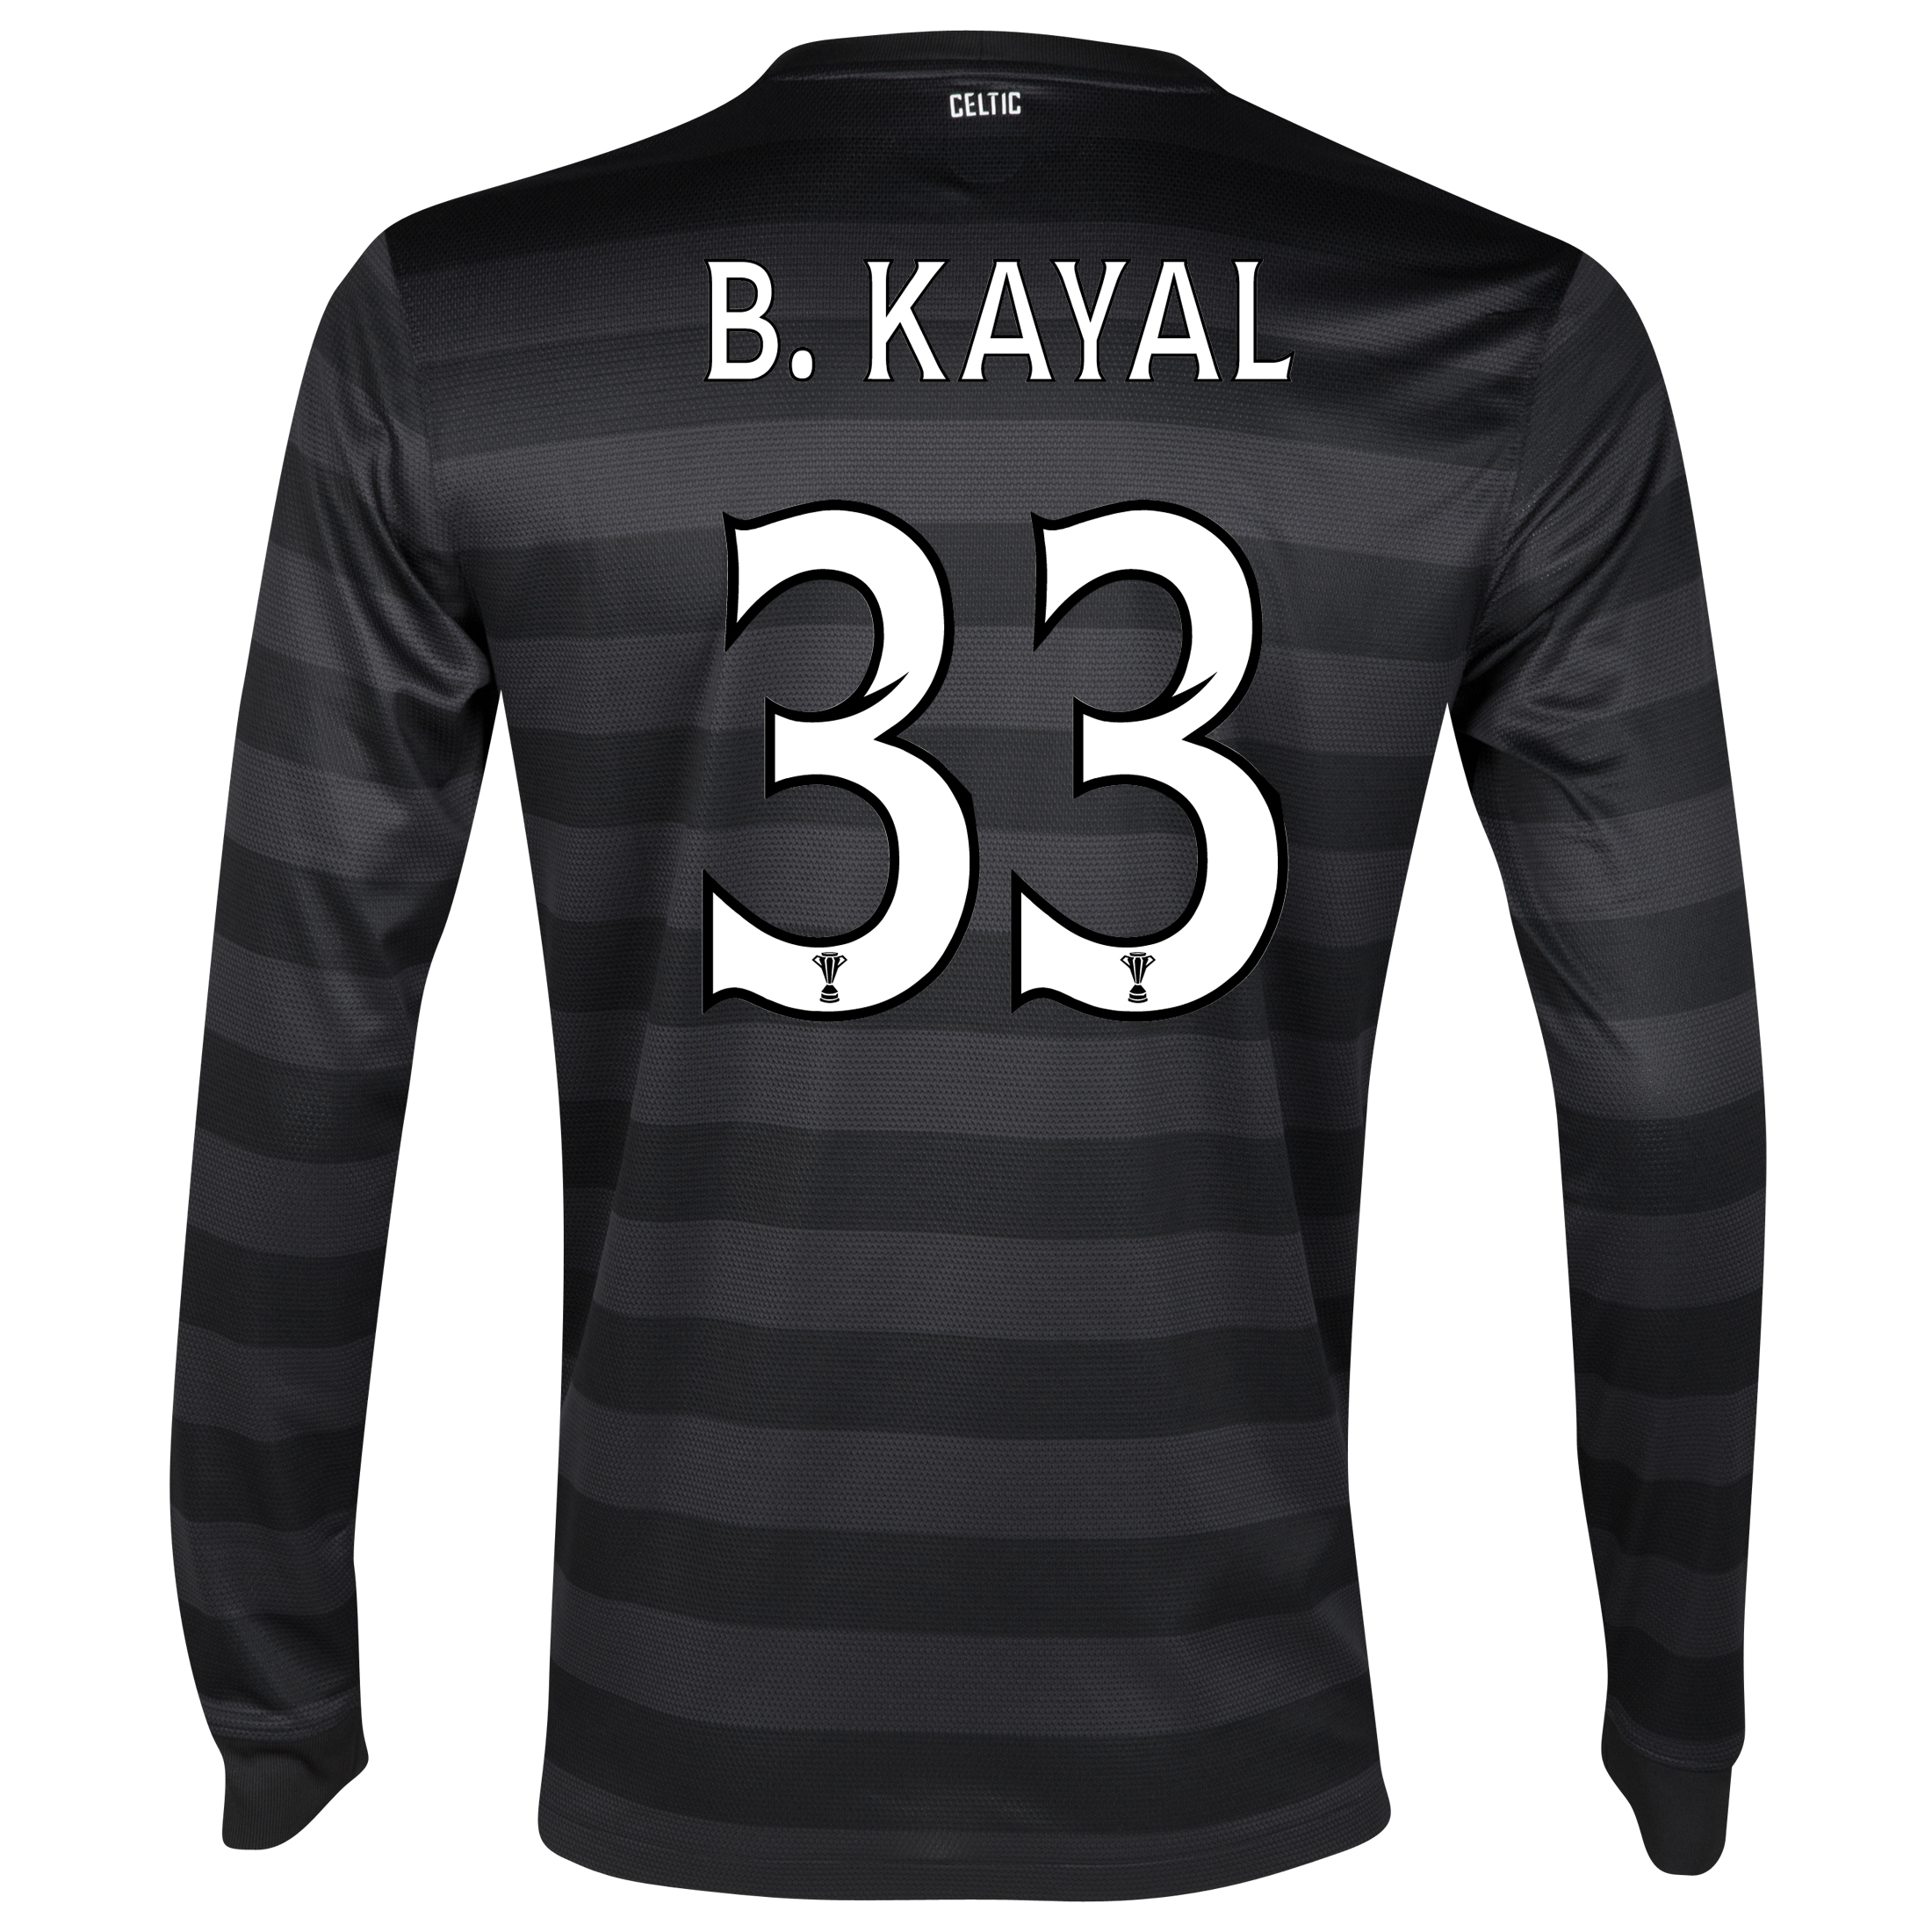 Celtic Away Shirt 2012/13 - Long Sleeved no sponsor with B.Kayal 33 printing